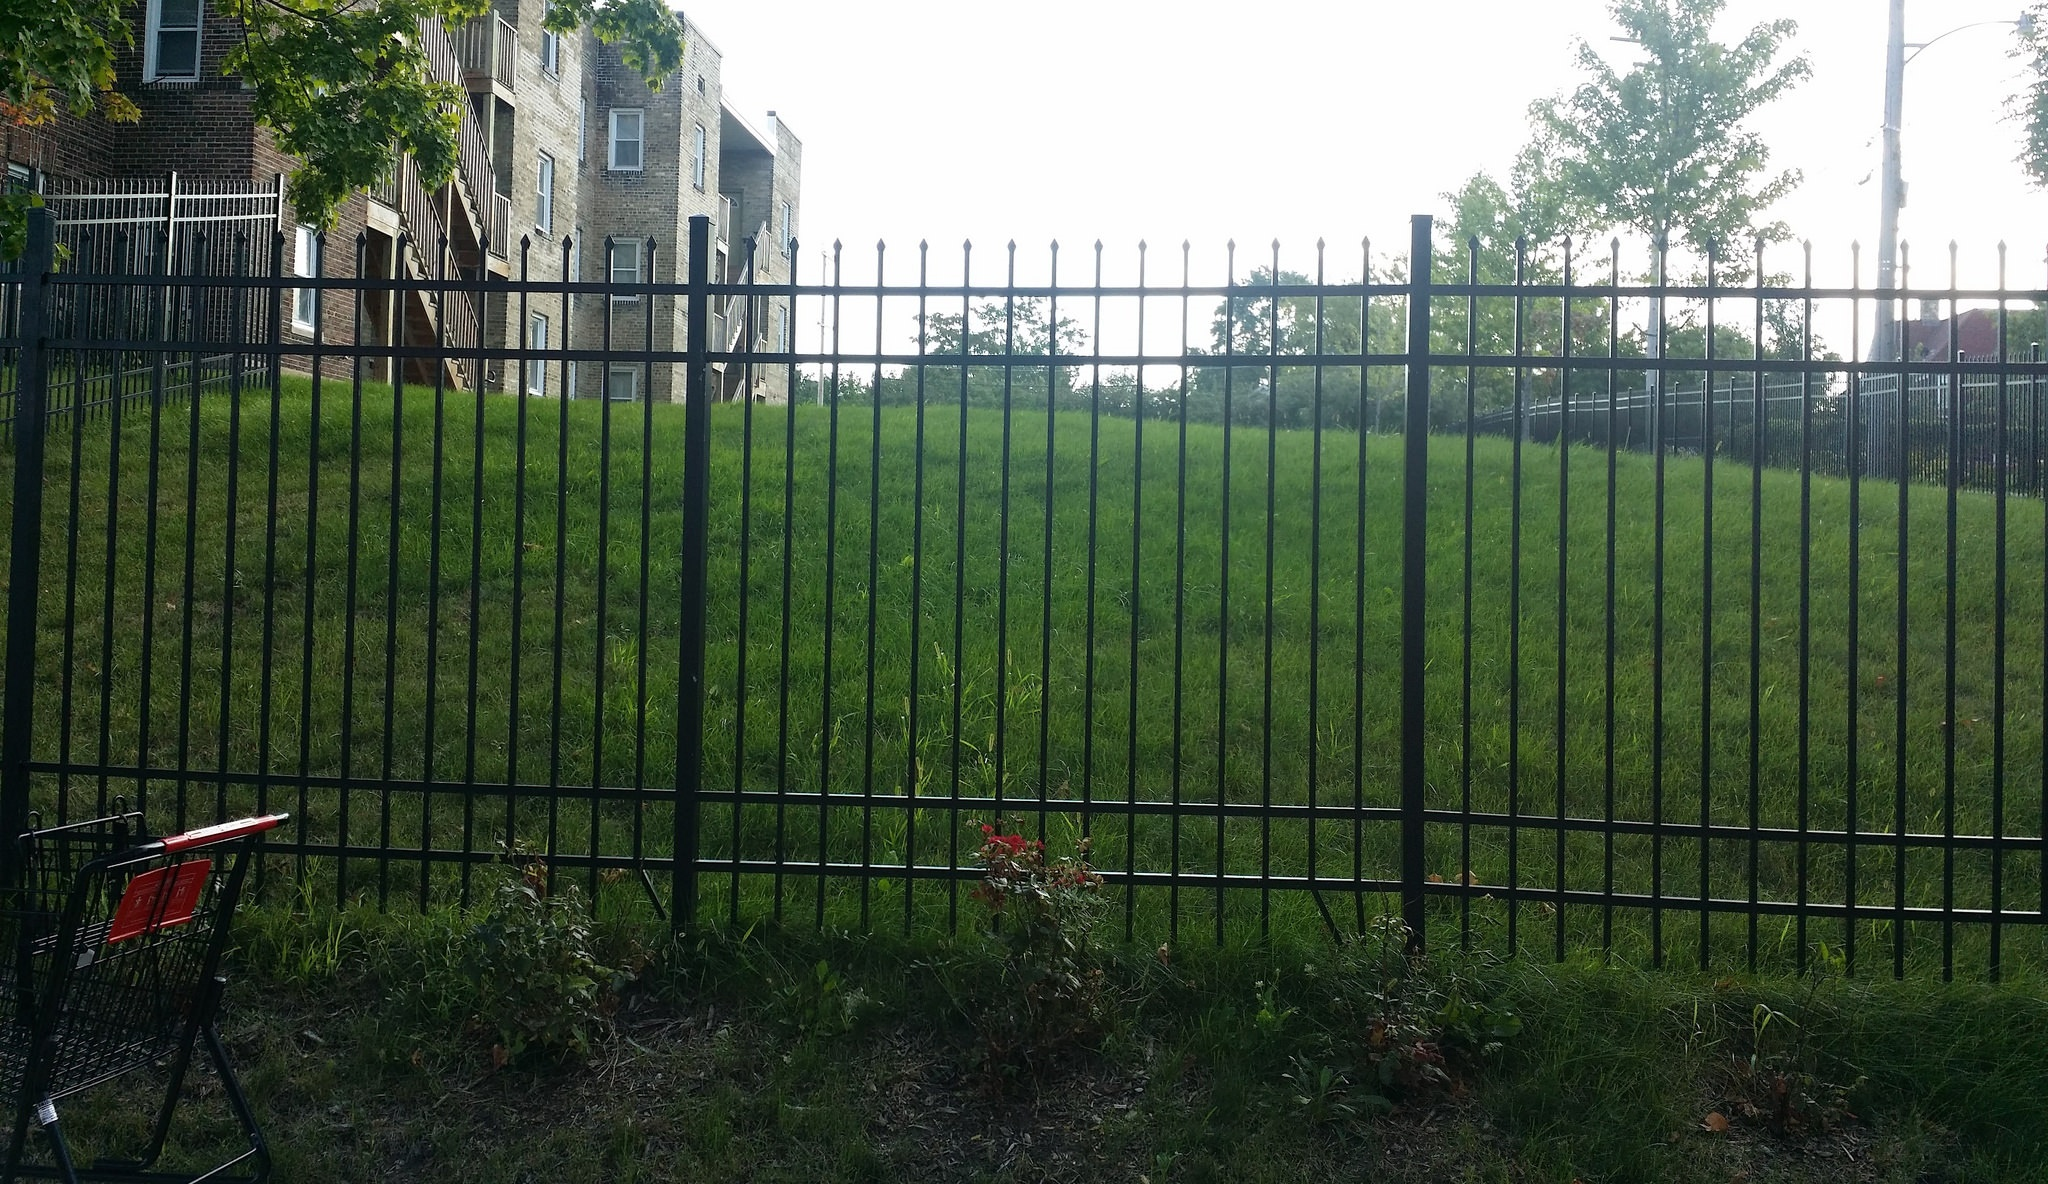 Jeffrey Dahmer S Former Home Is Now A Creepy Vacant Lot